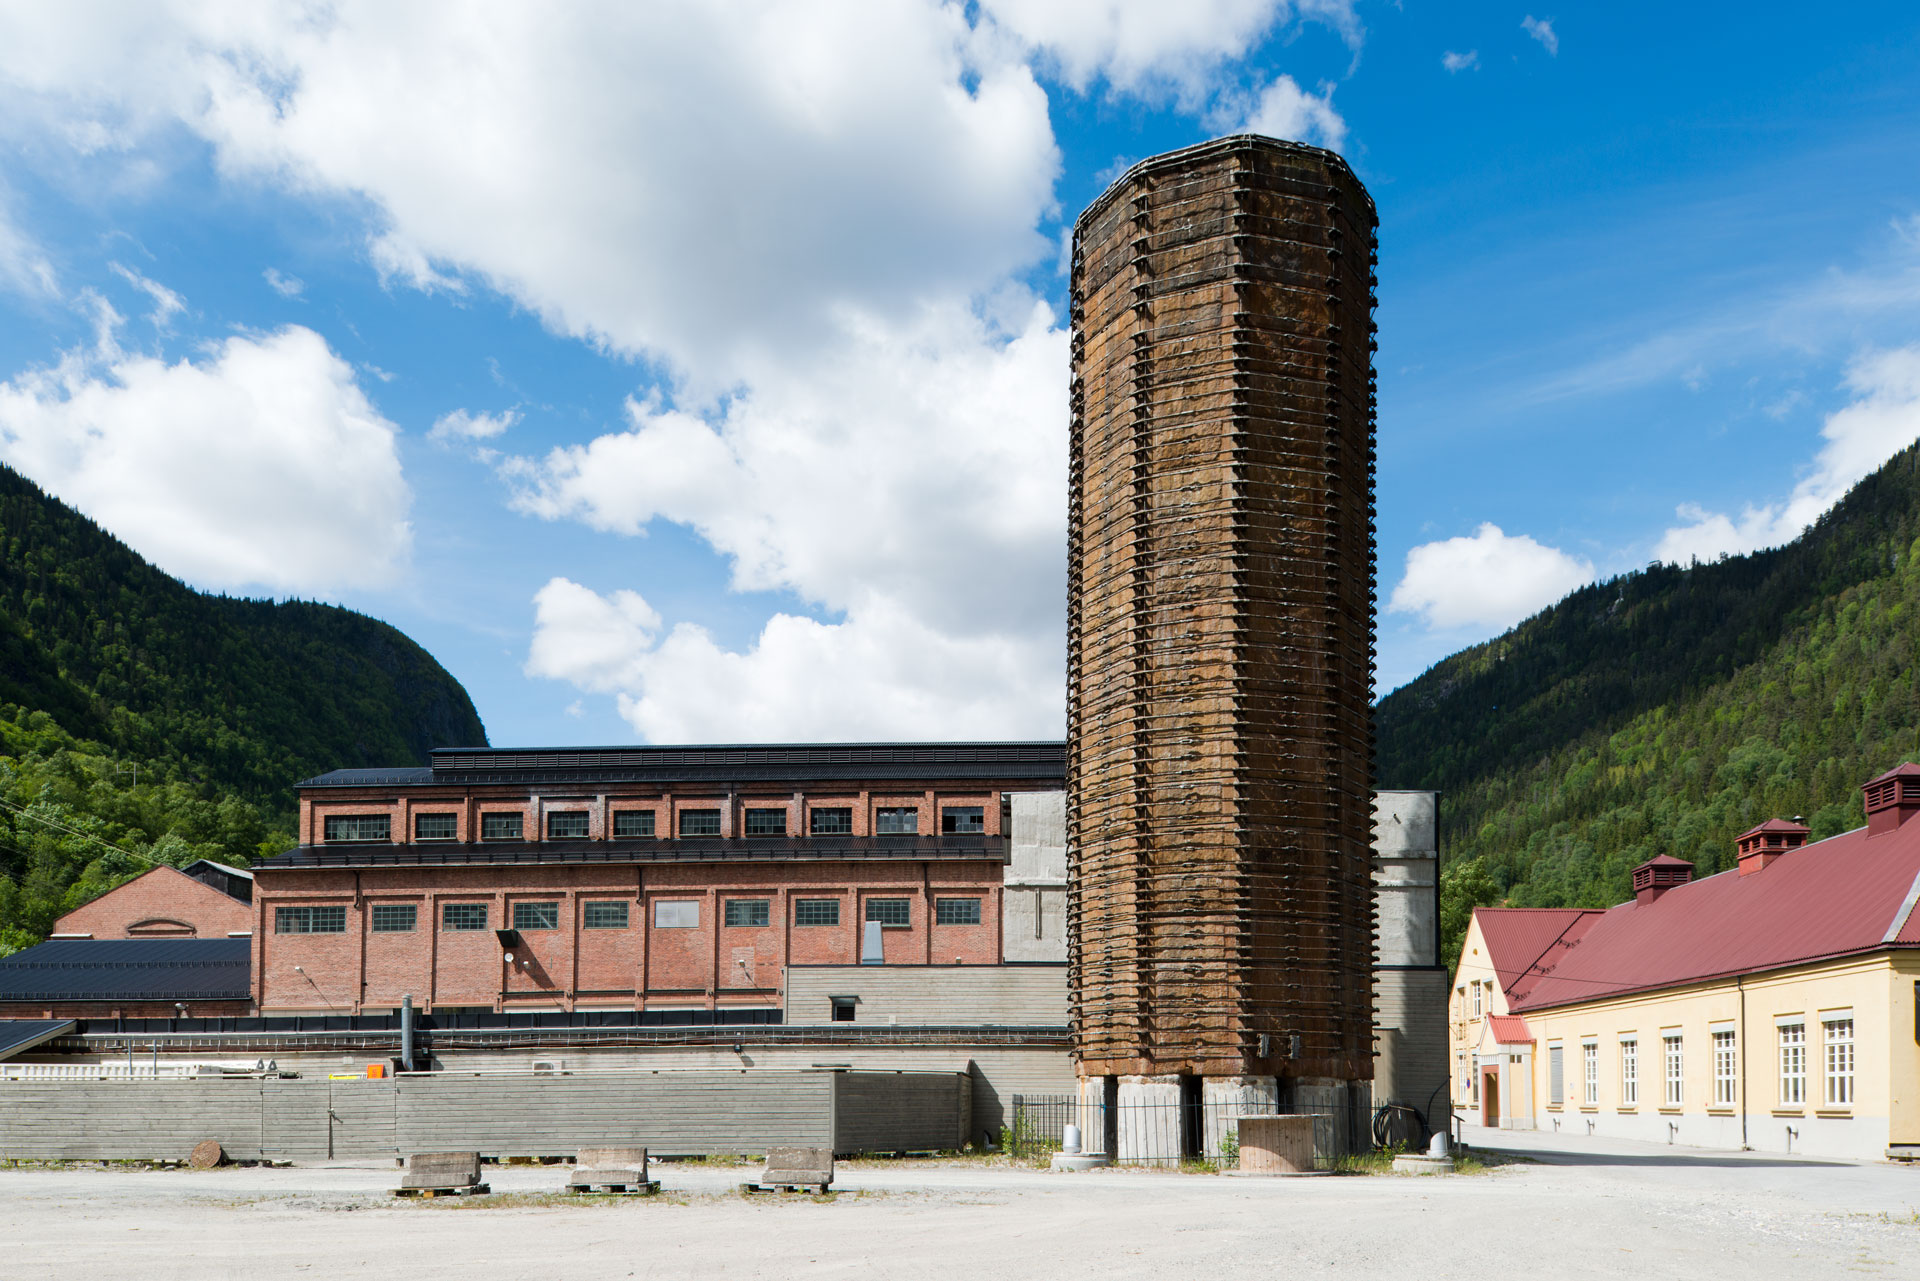 """The acid tower is the only building that remains from the initial production plant 'Rjukan I' which began producing ammonium nitrate and """"Norwegian salpeter"""" in November 1911. Photo: Per Berntsen, the Directorate for Cultural Heritage"""